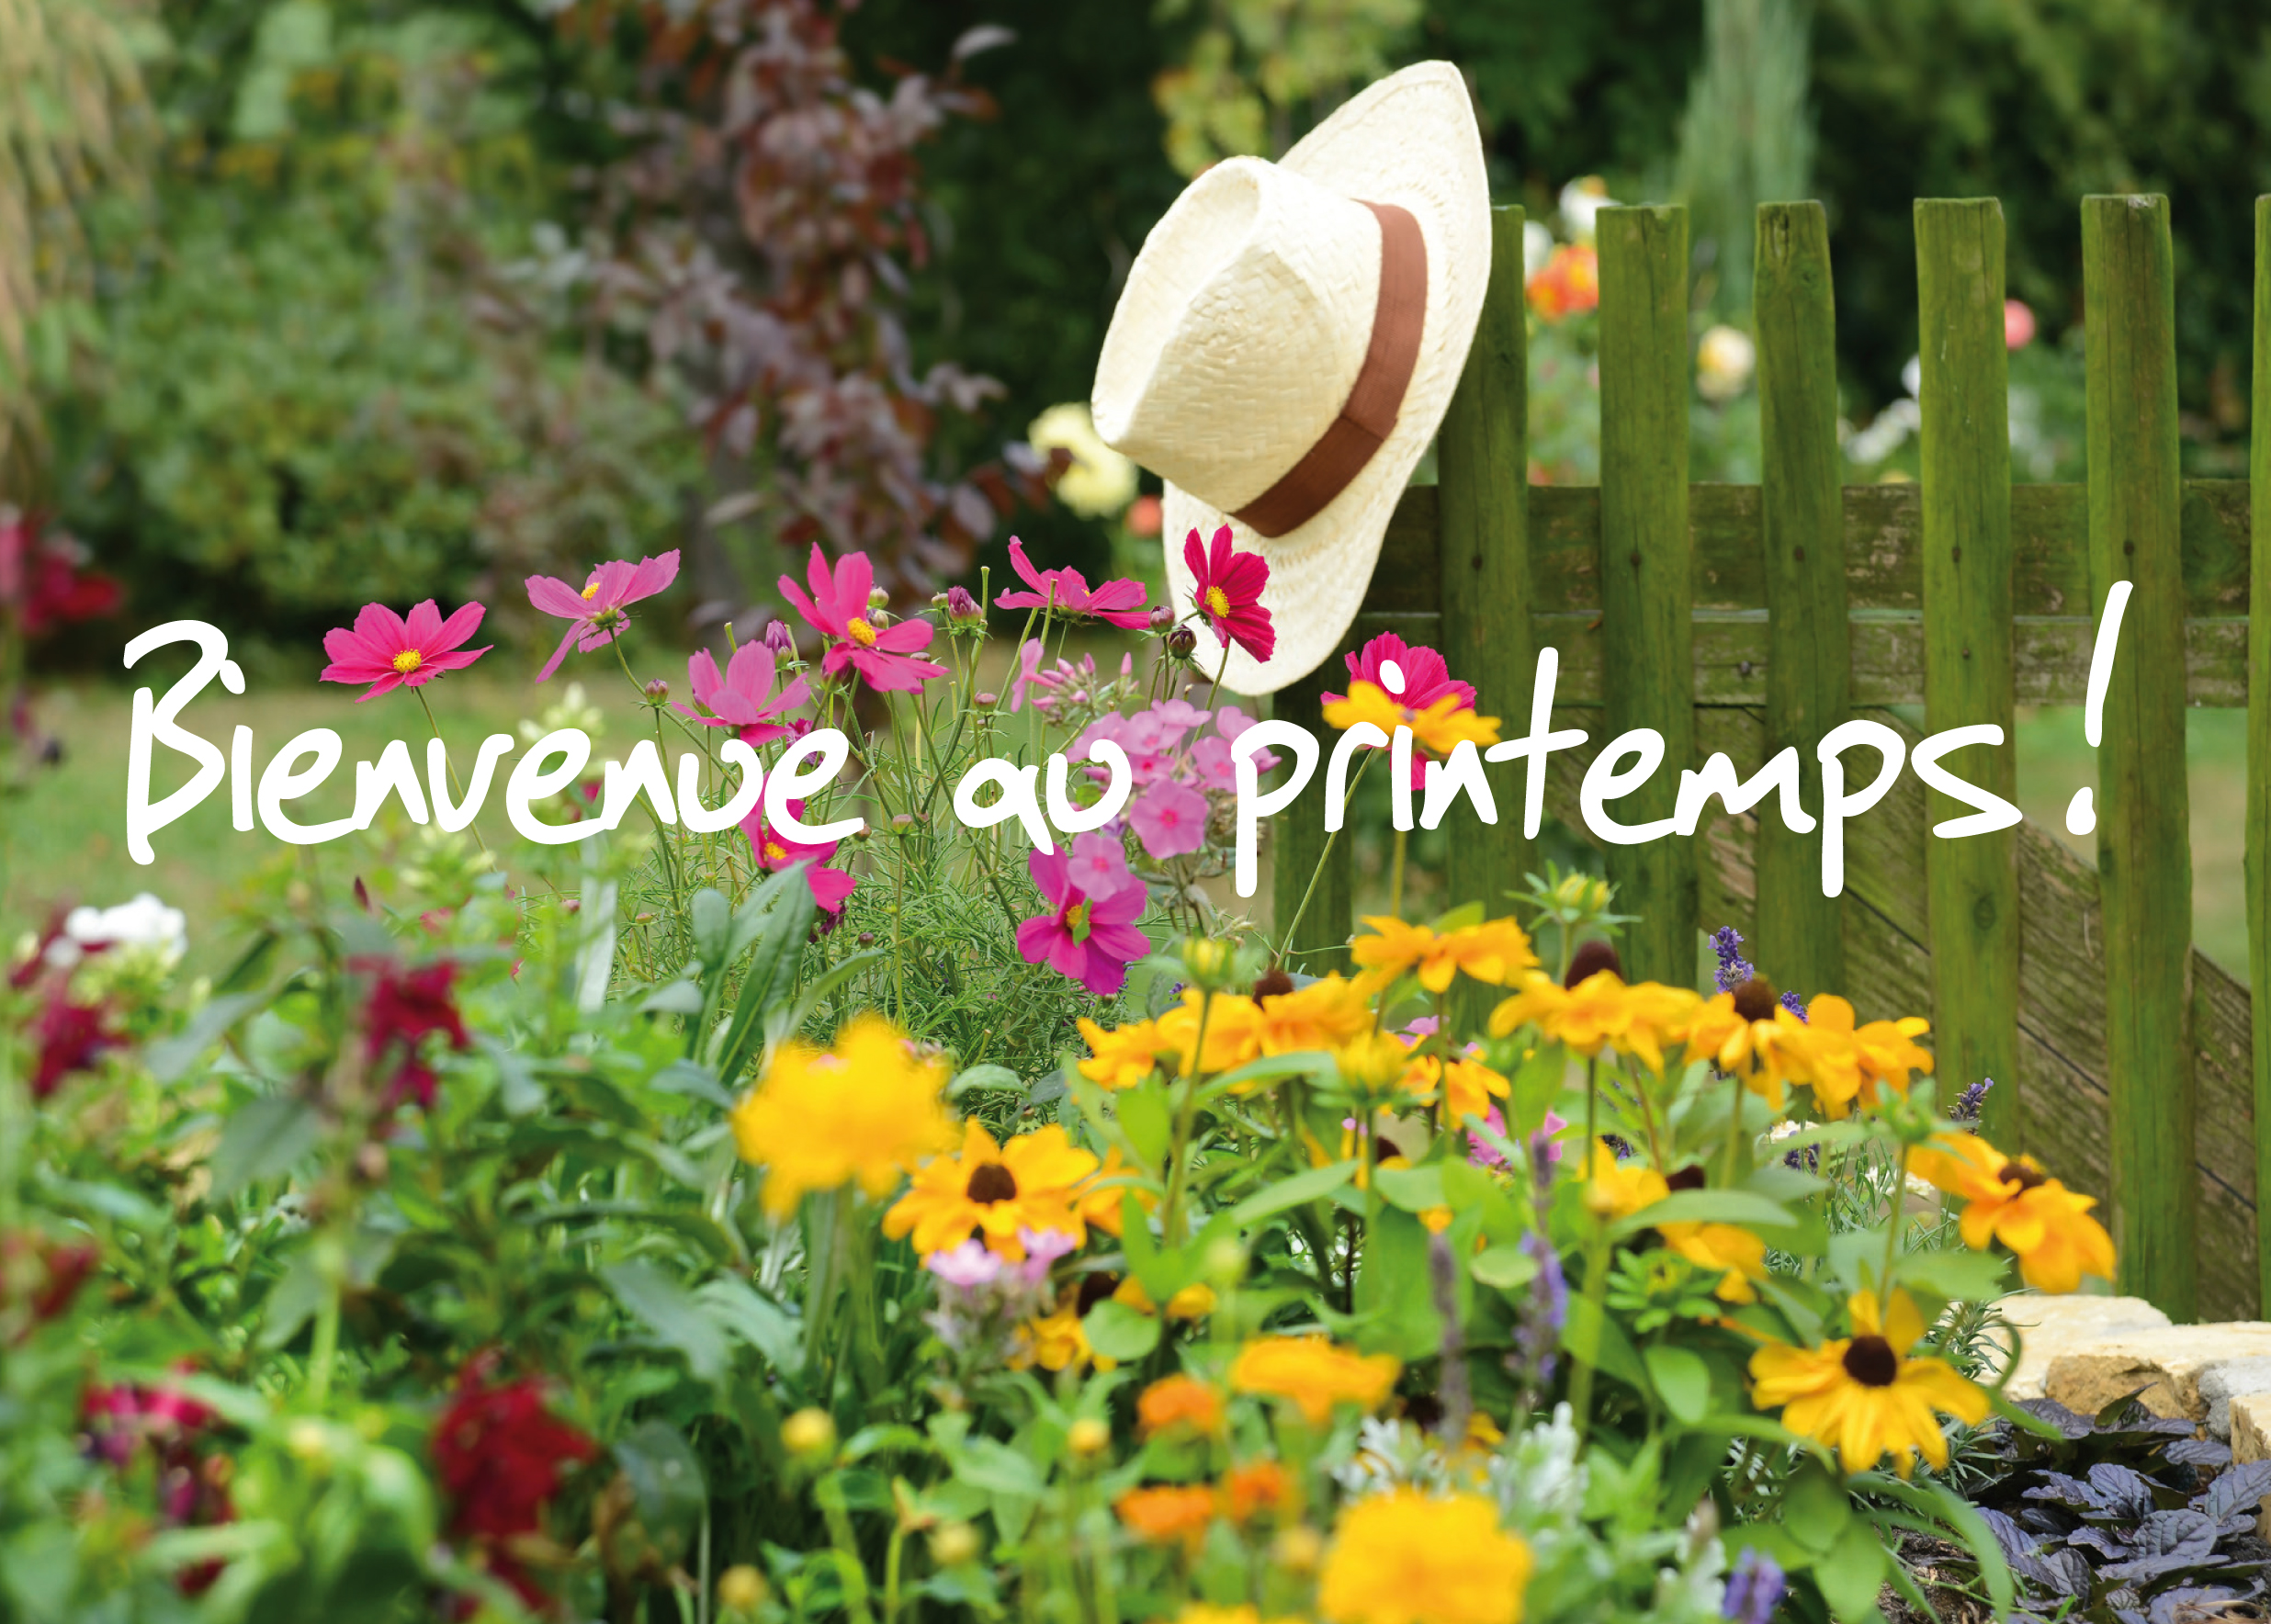 Printemps for Au jardin by les amis